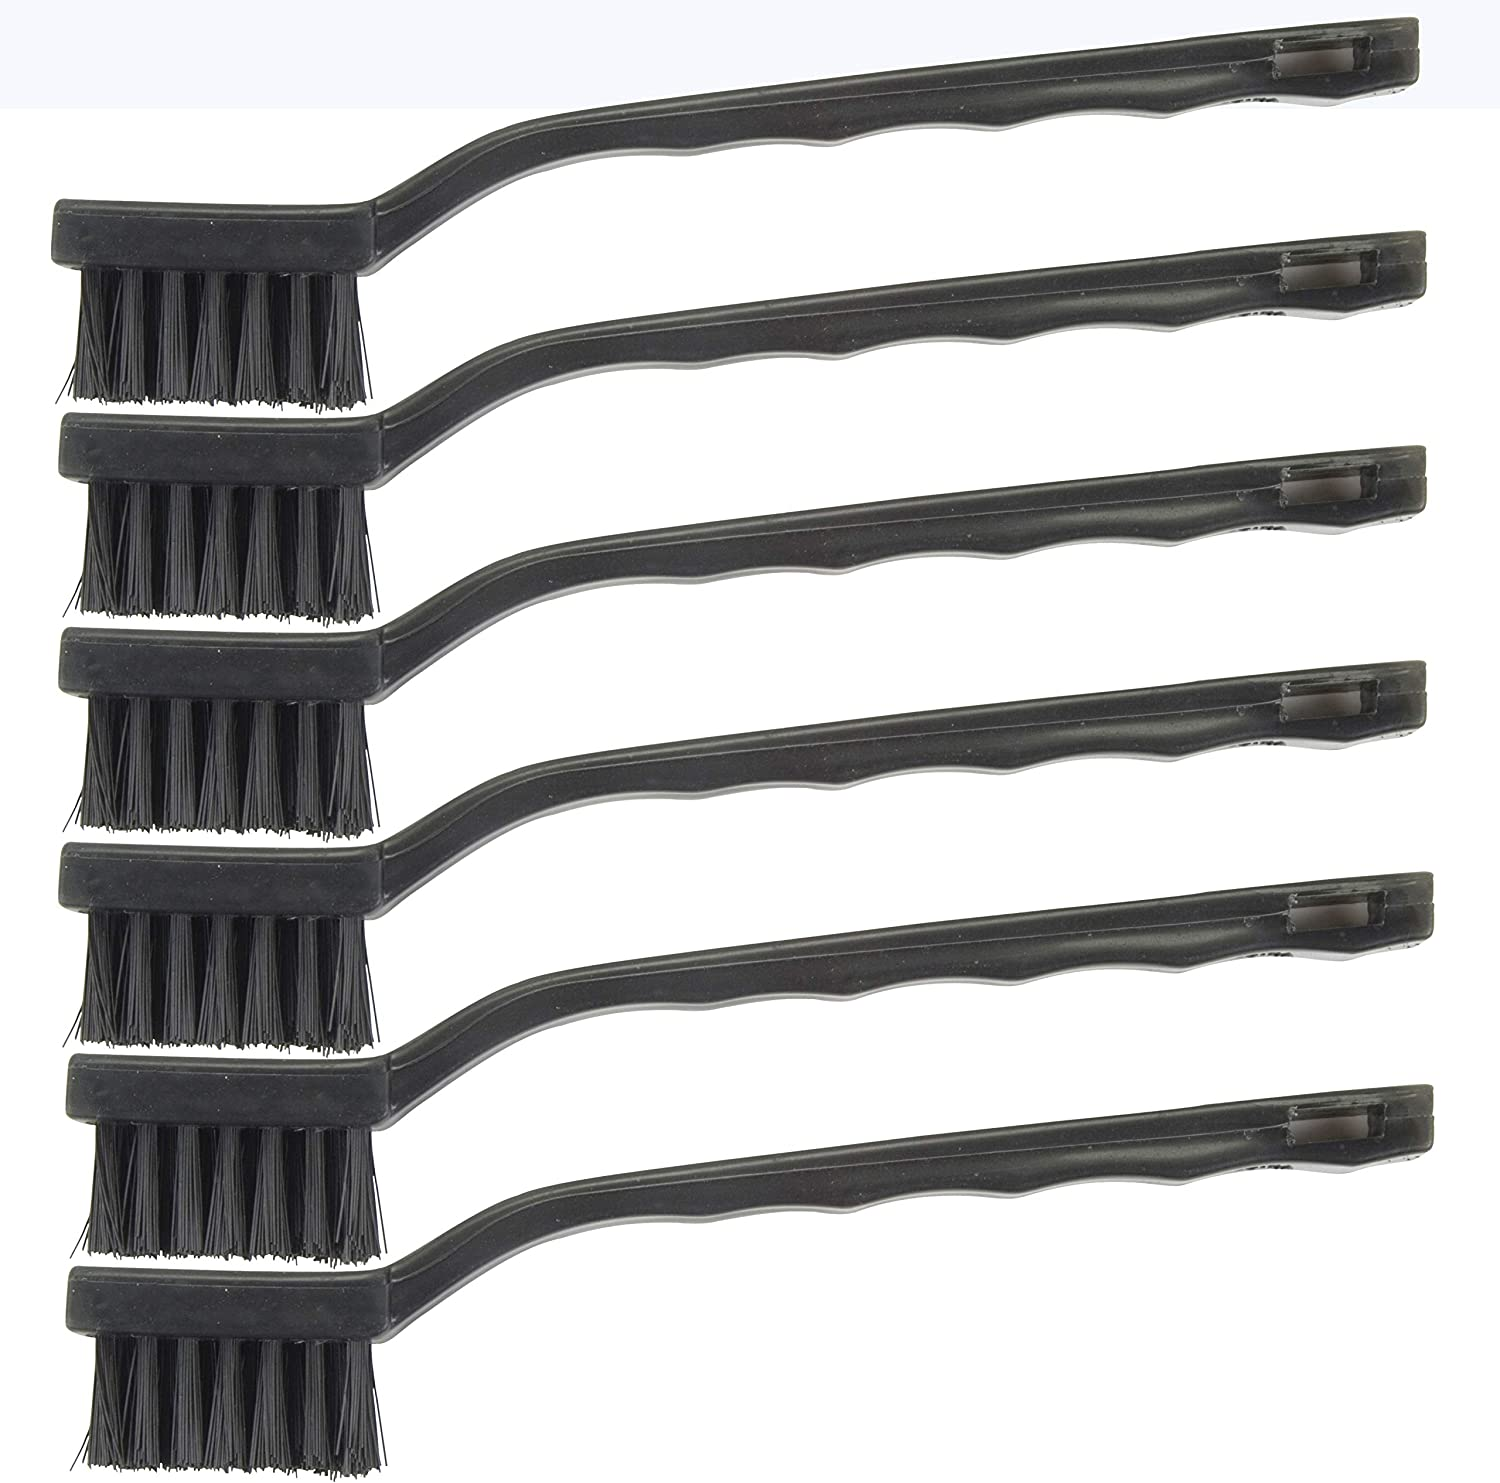 46615 Hyde Tools Nylon Wire Brushes - Pack of 6 (Nylon)